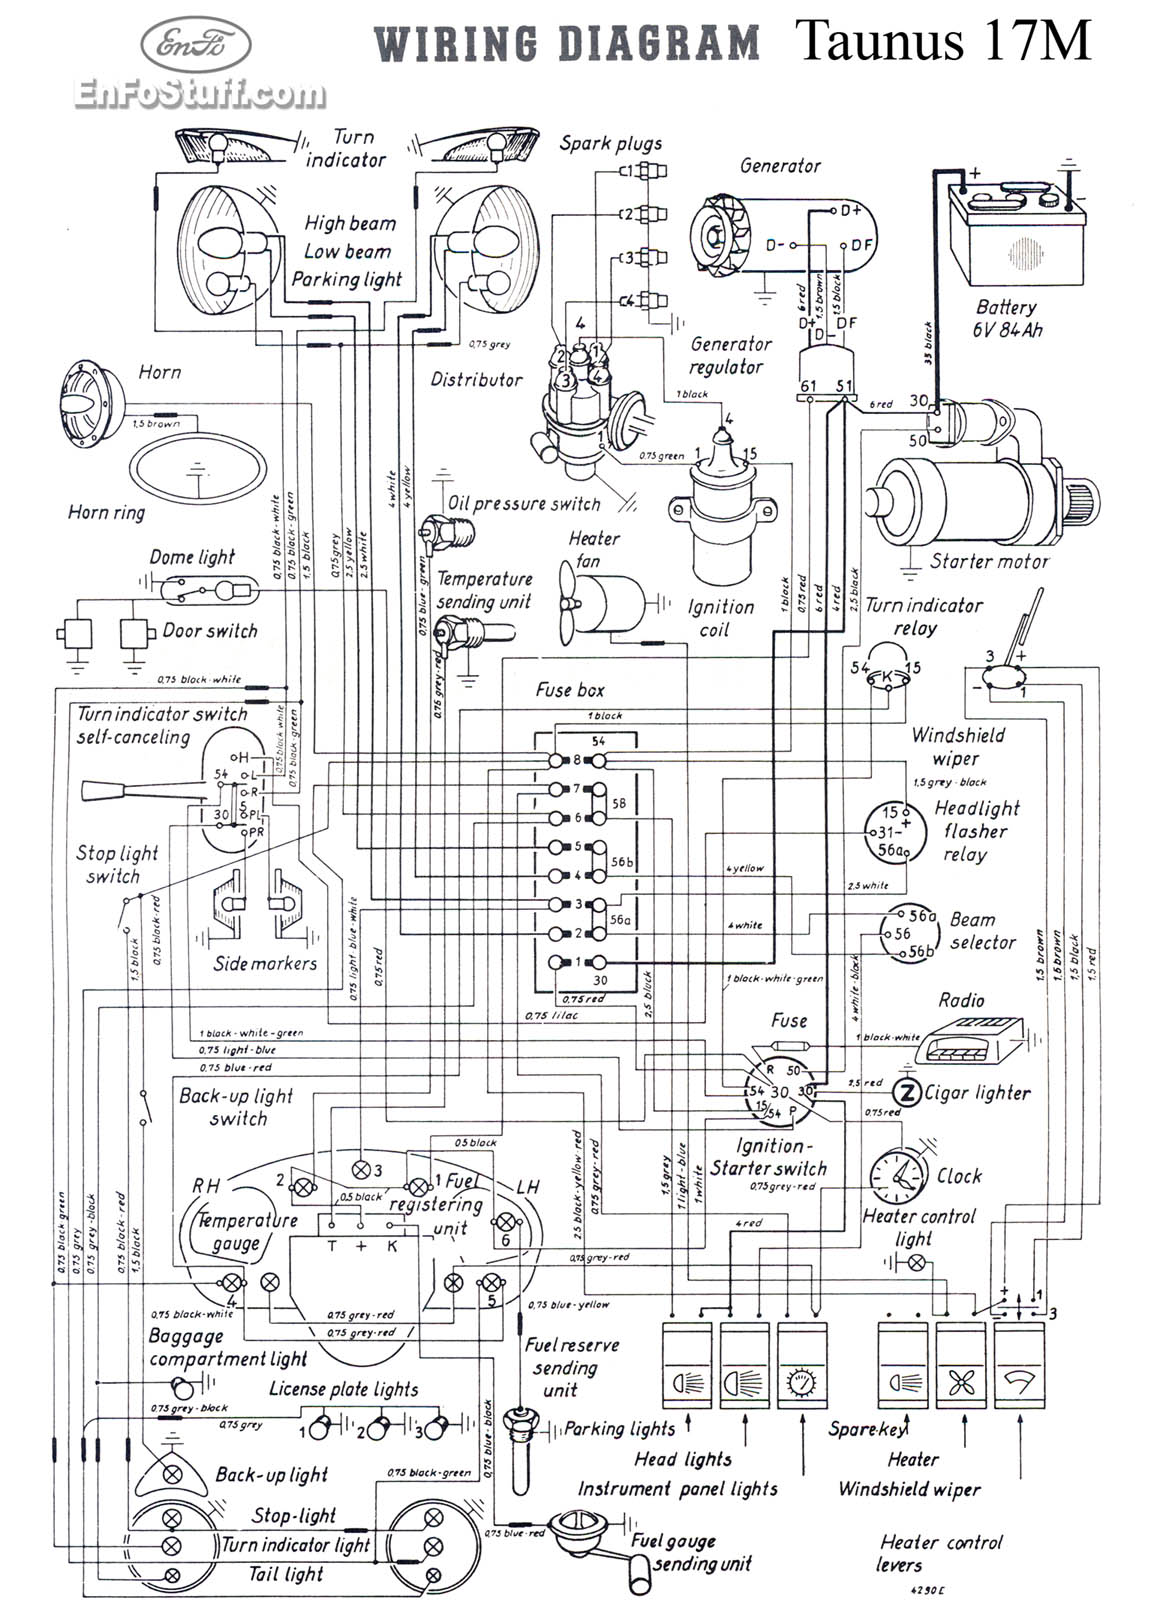 wiring diagrams schematics wiring diagrams schematics for consul anglia prefect escort zephyr and zodiac